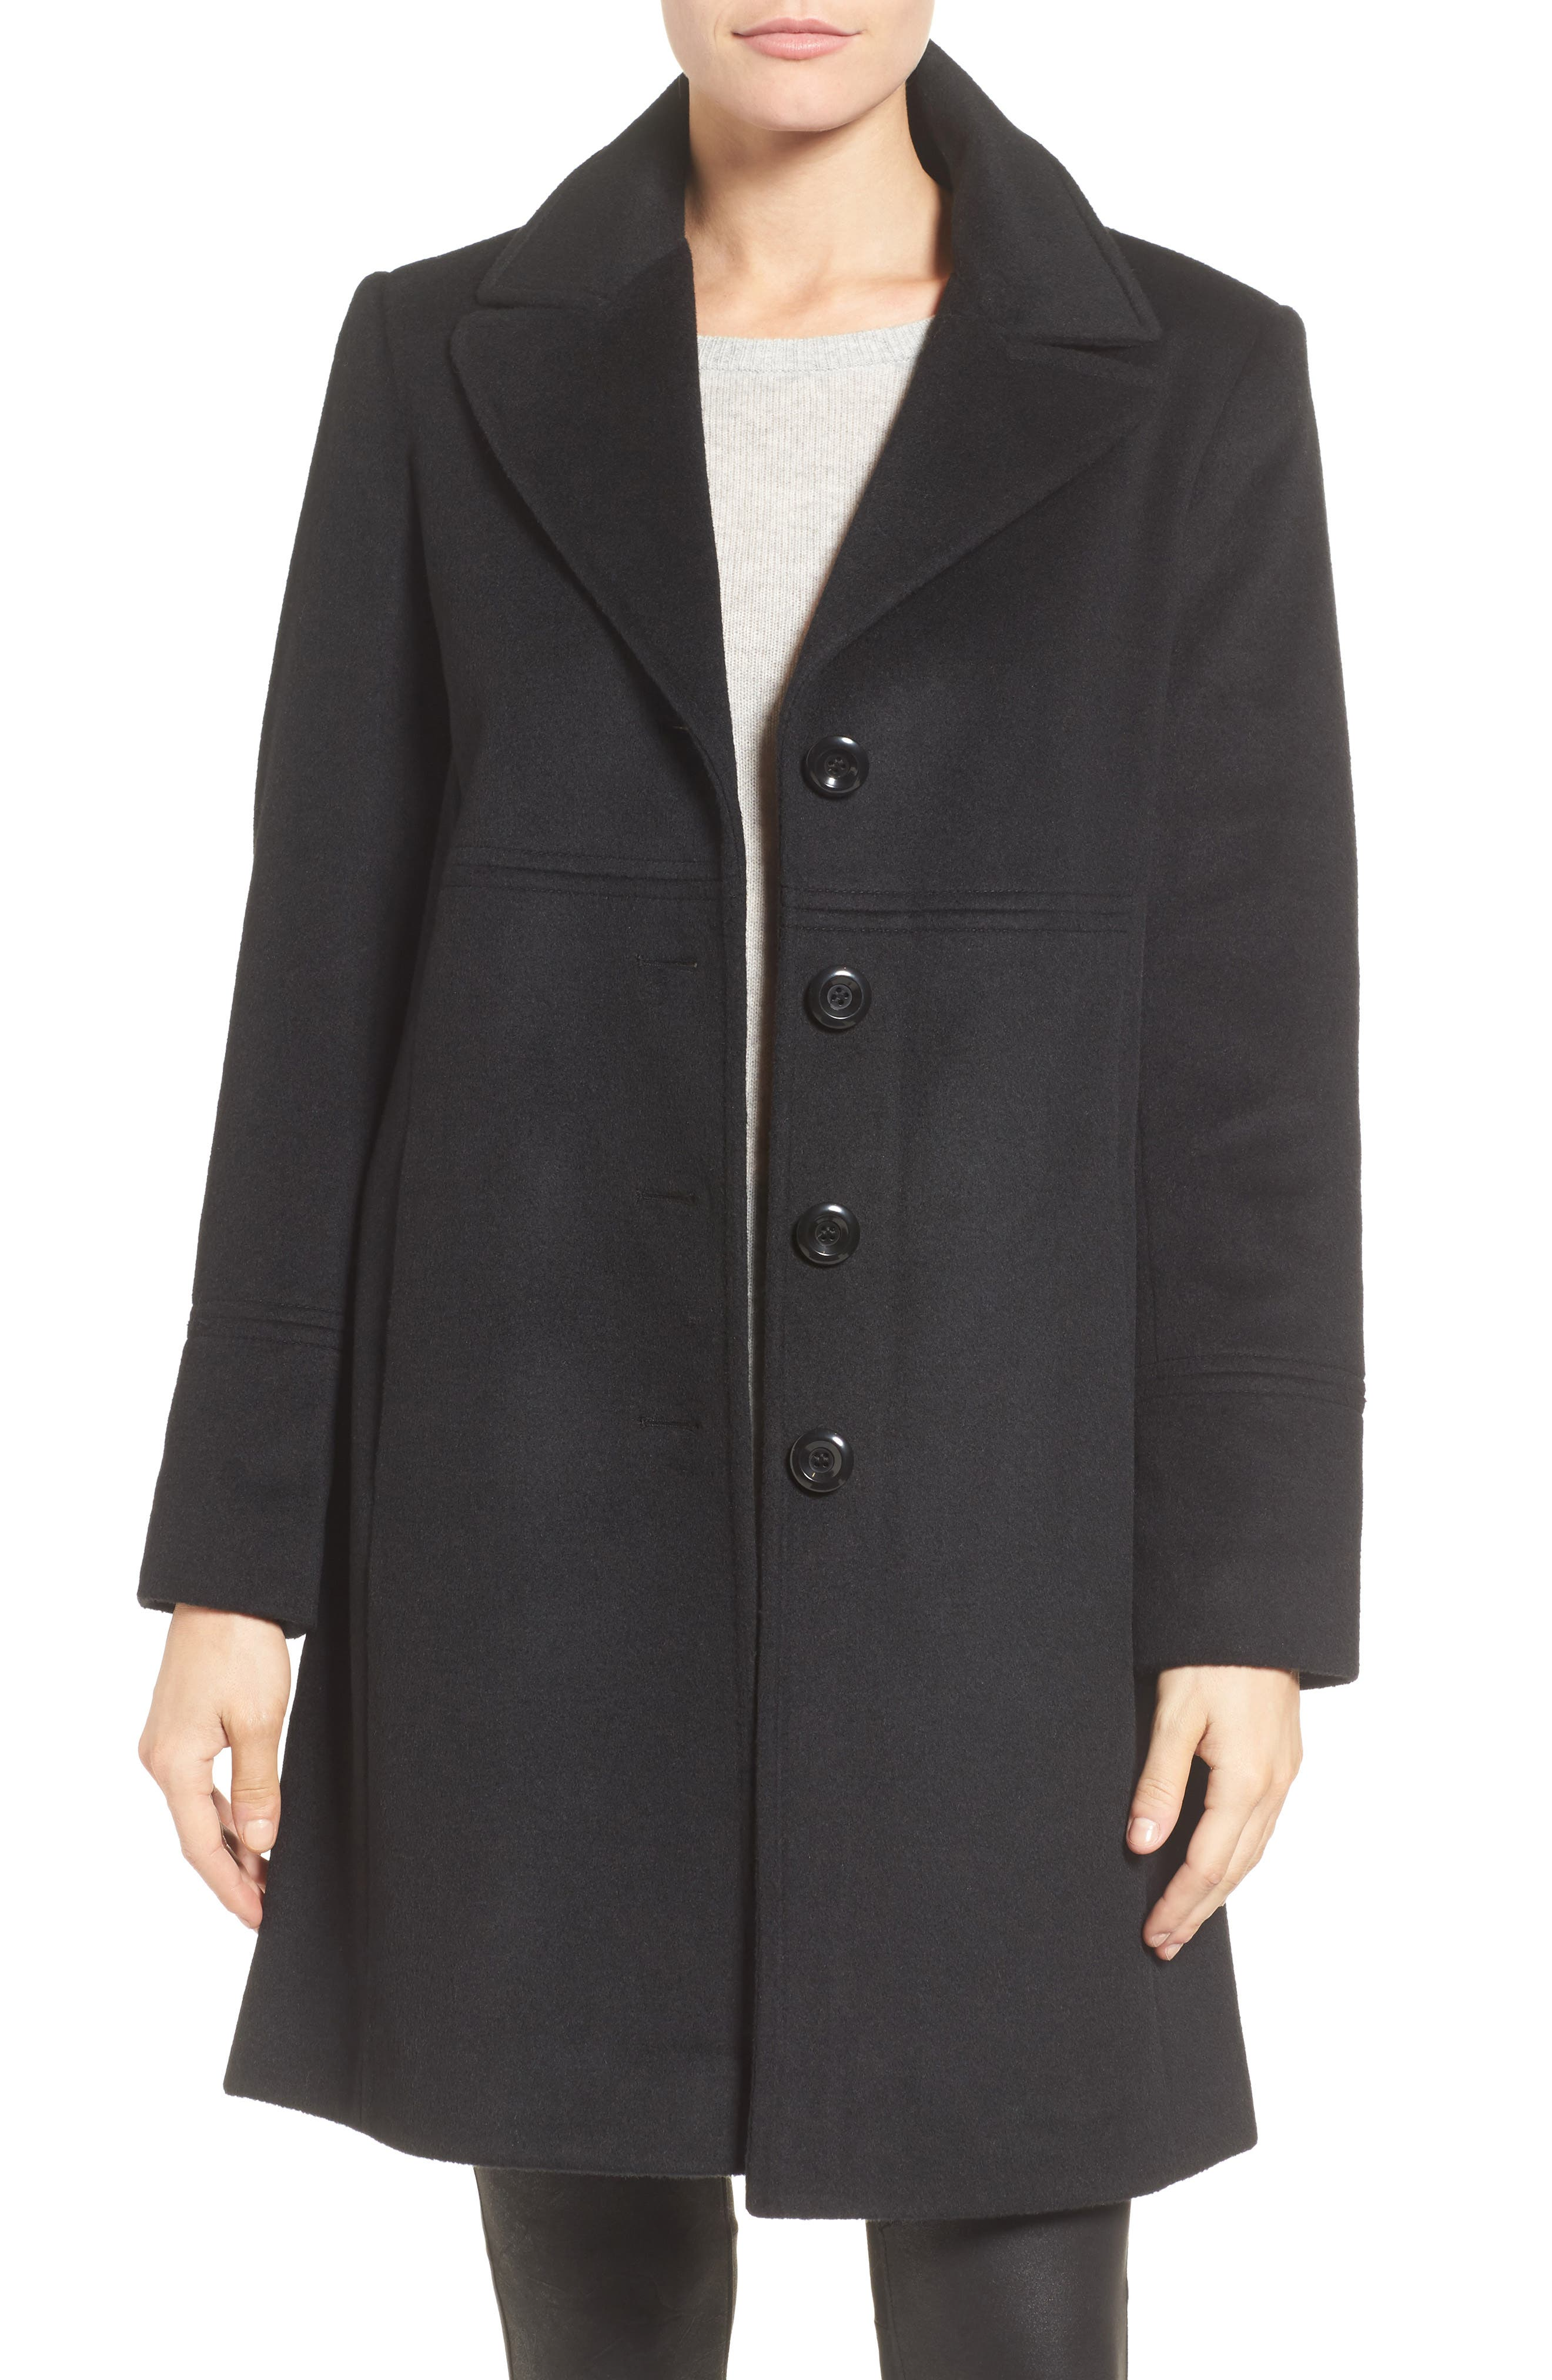 Alternate Image 1 Selected - Larry Levine Notch Collar Wool Blend Coat